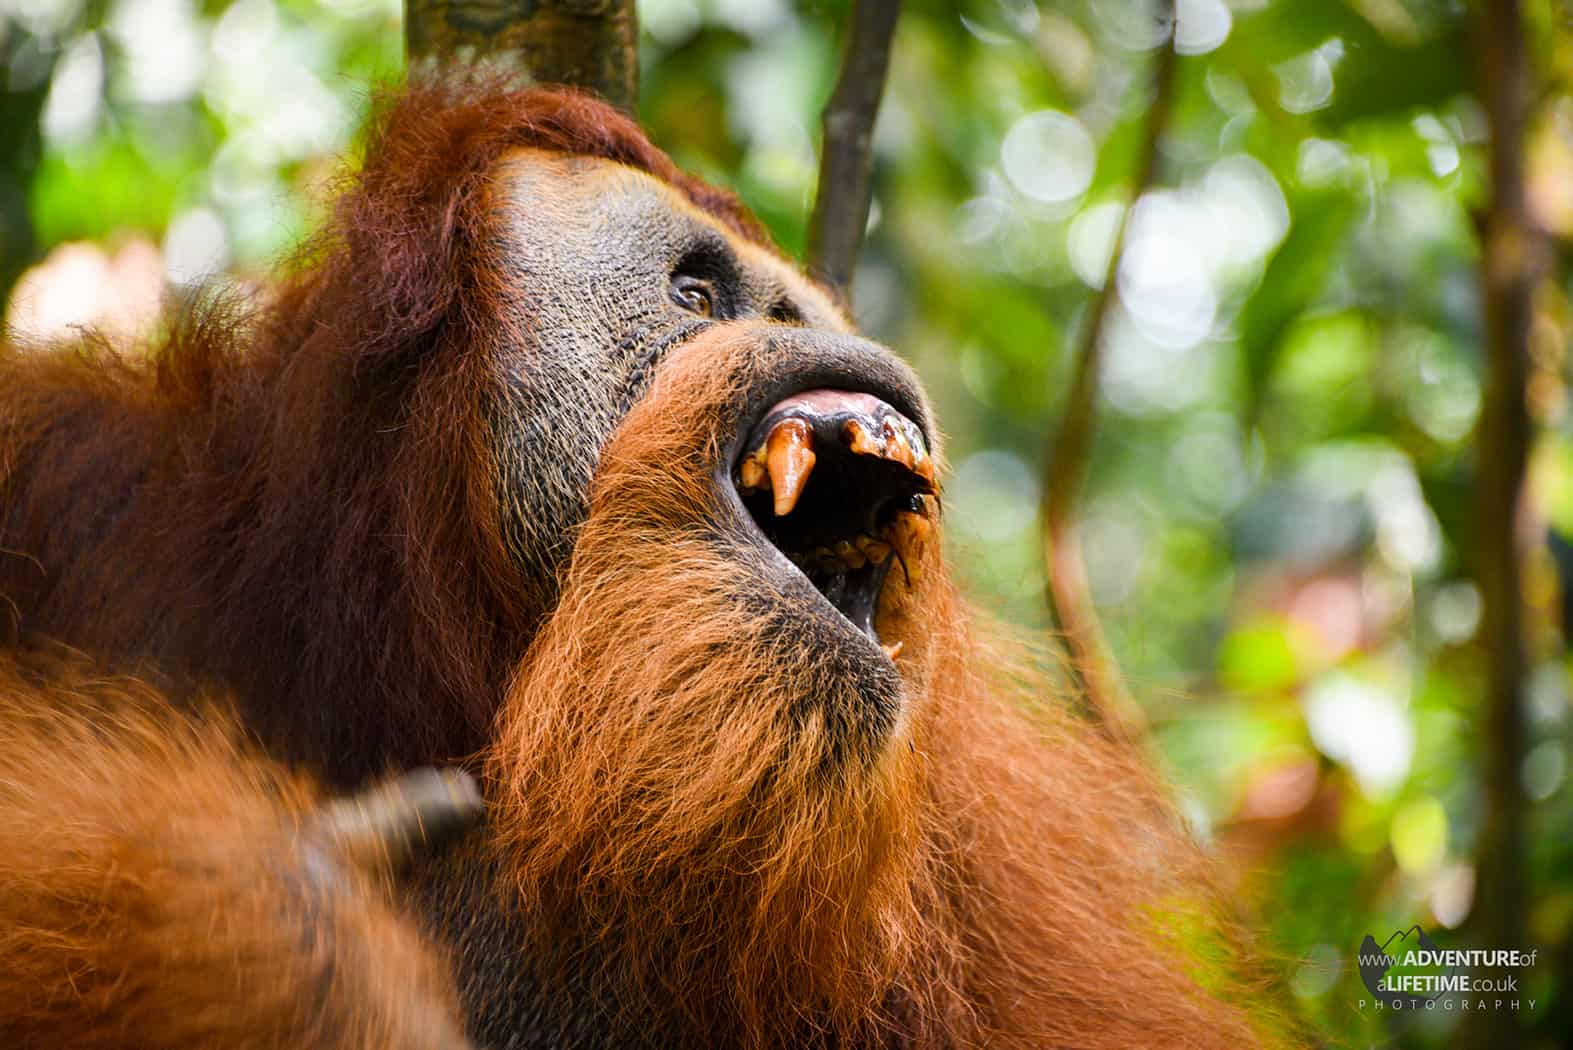 Sumatran Orangutan showing his teeth